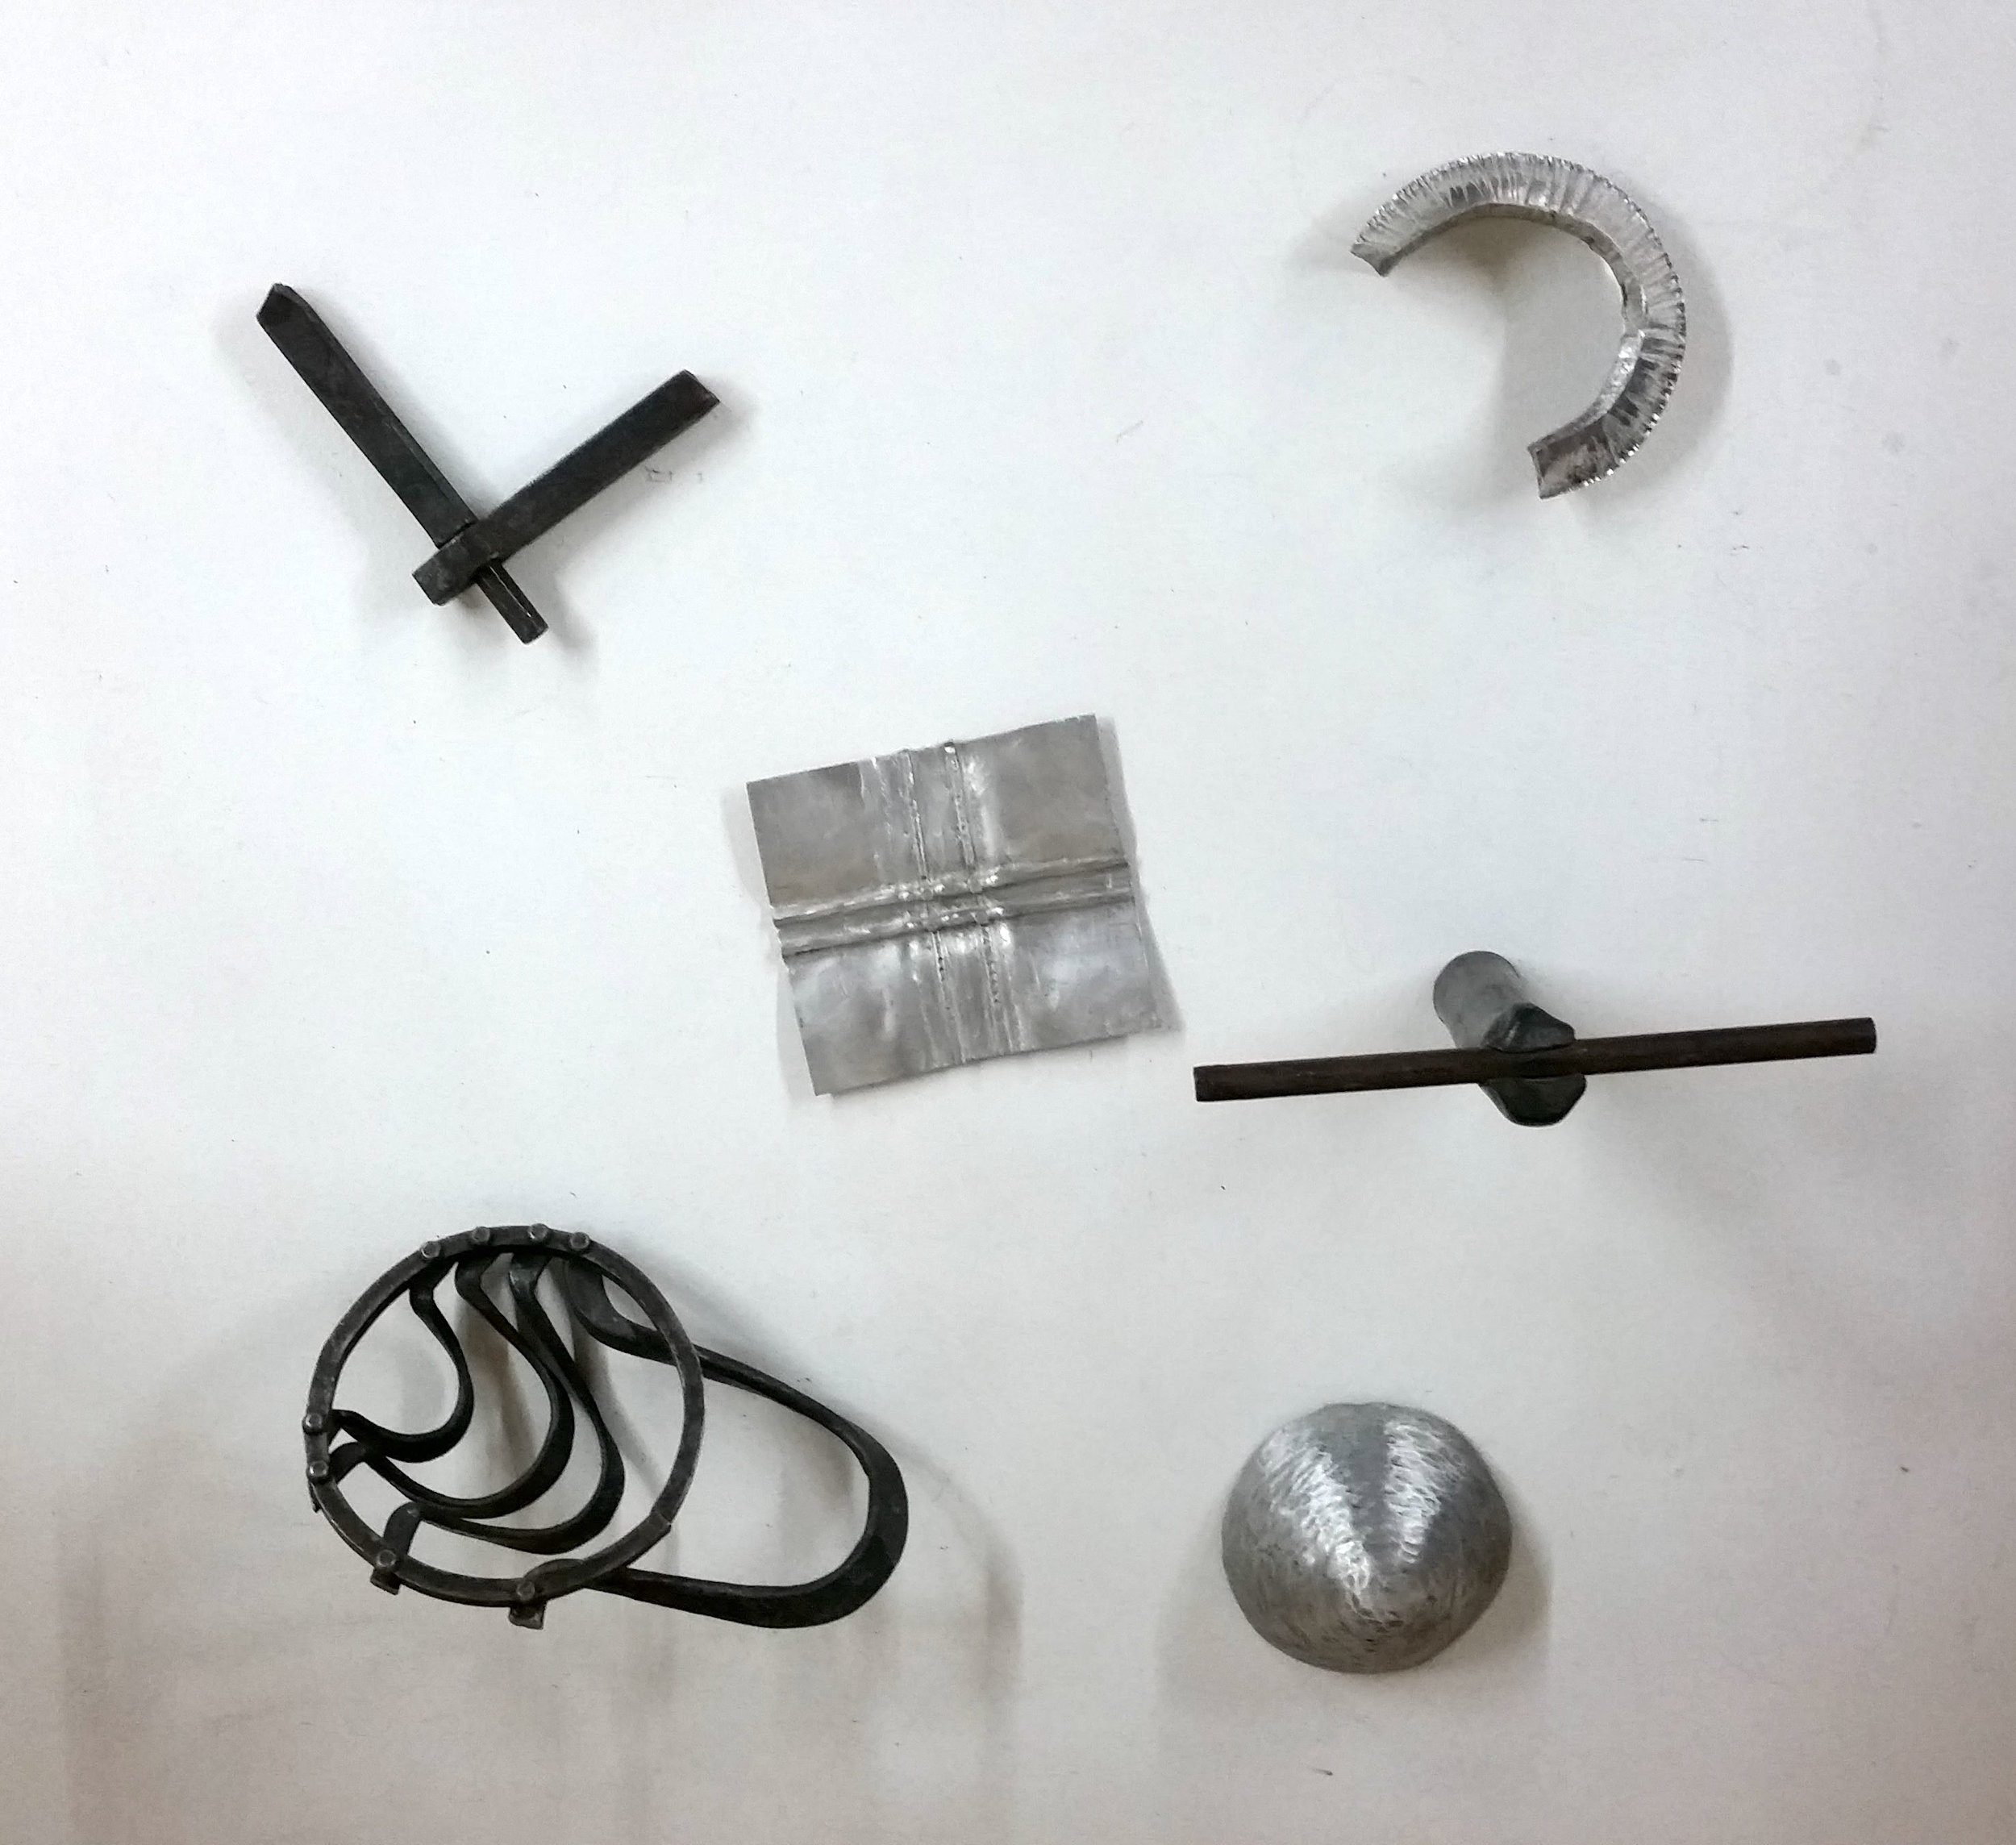 Sarah Holden,  Teaching Samples: Rivets, Mortise and Tenon, Alternate Connection, Foldforming, and Angle Raising , Aluminum and mild steel